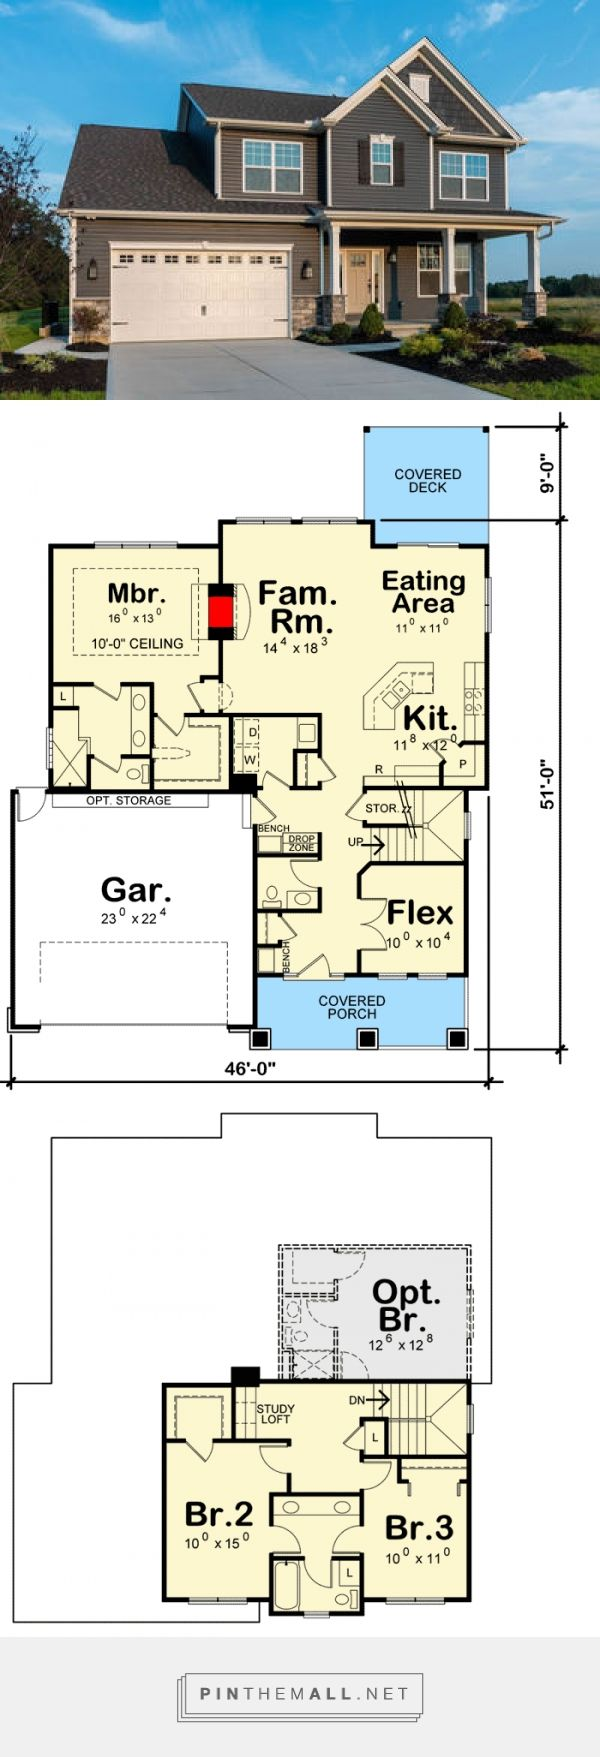 331 best sims images on pinterest house floor plans sims house plan 42383db traditional house plan with optional 4th bedroom and flex room